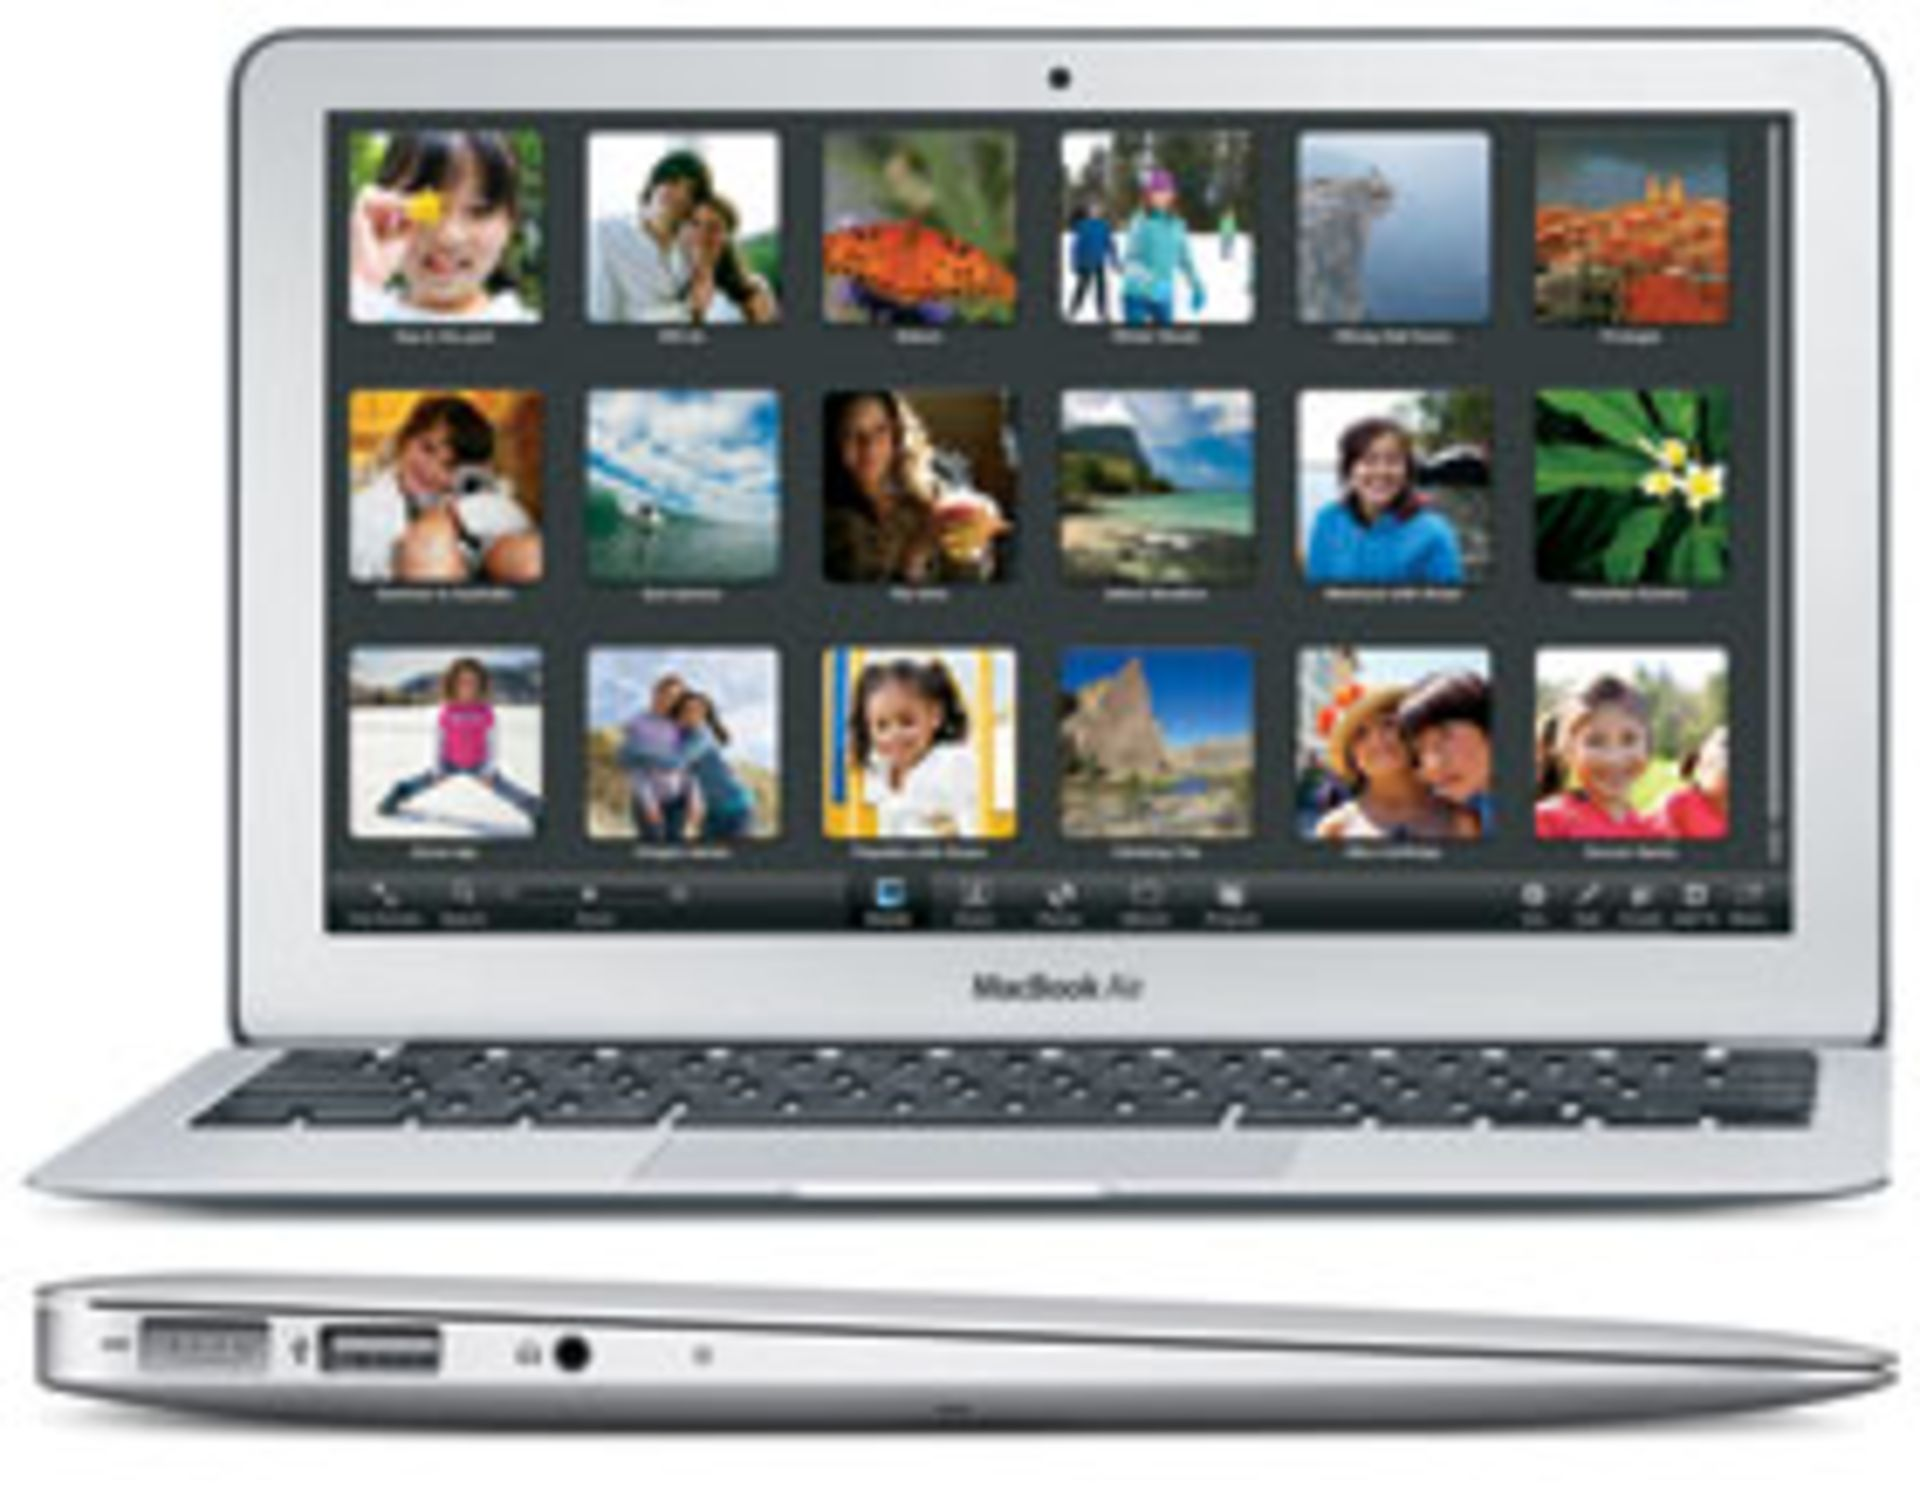 Lot 60026 - V Grade B Macbook Air 11.6 Inch Core 2 Duo - 64GB SSD - A1370 - Available Approx 7 Working Days